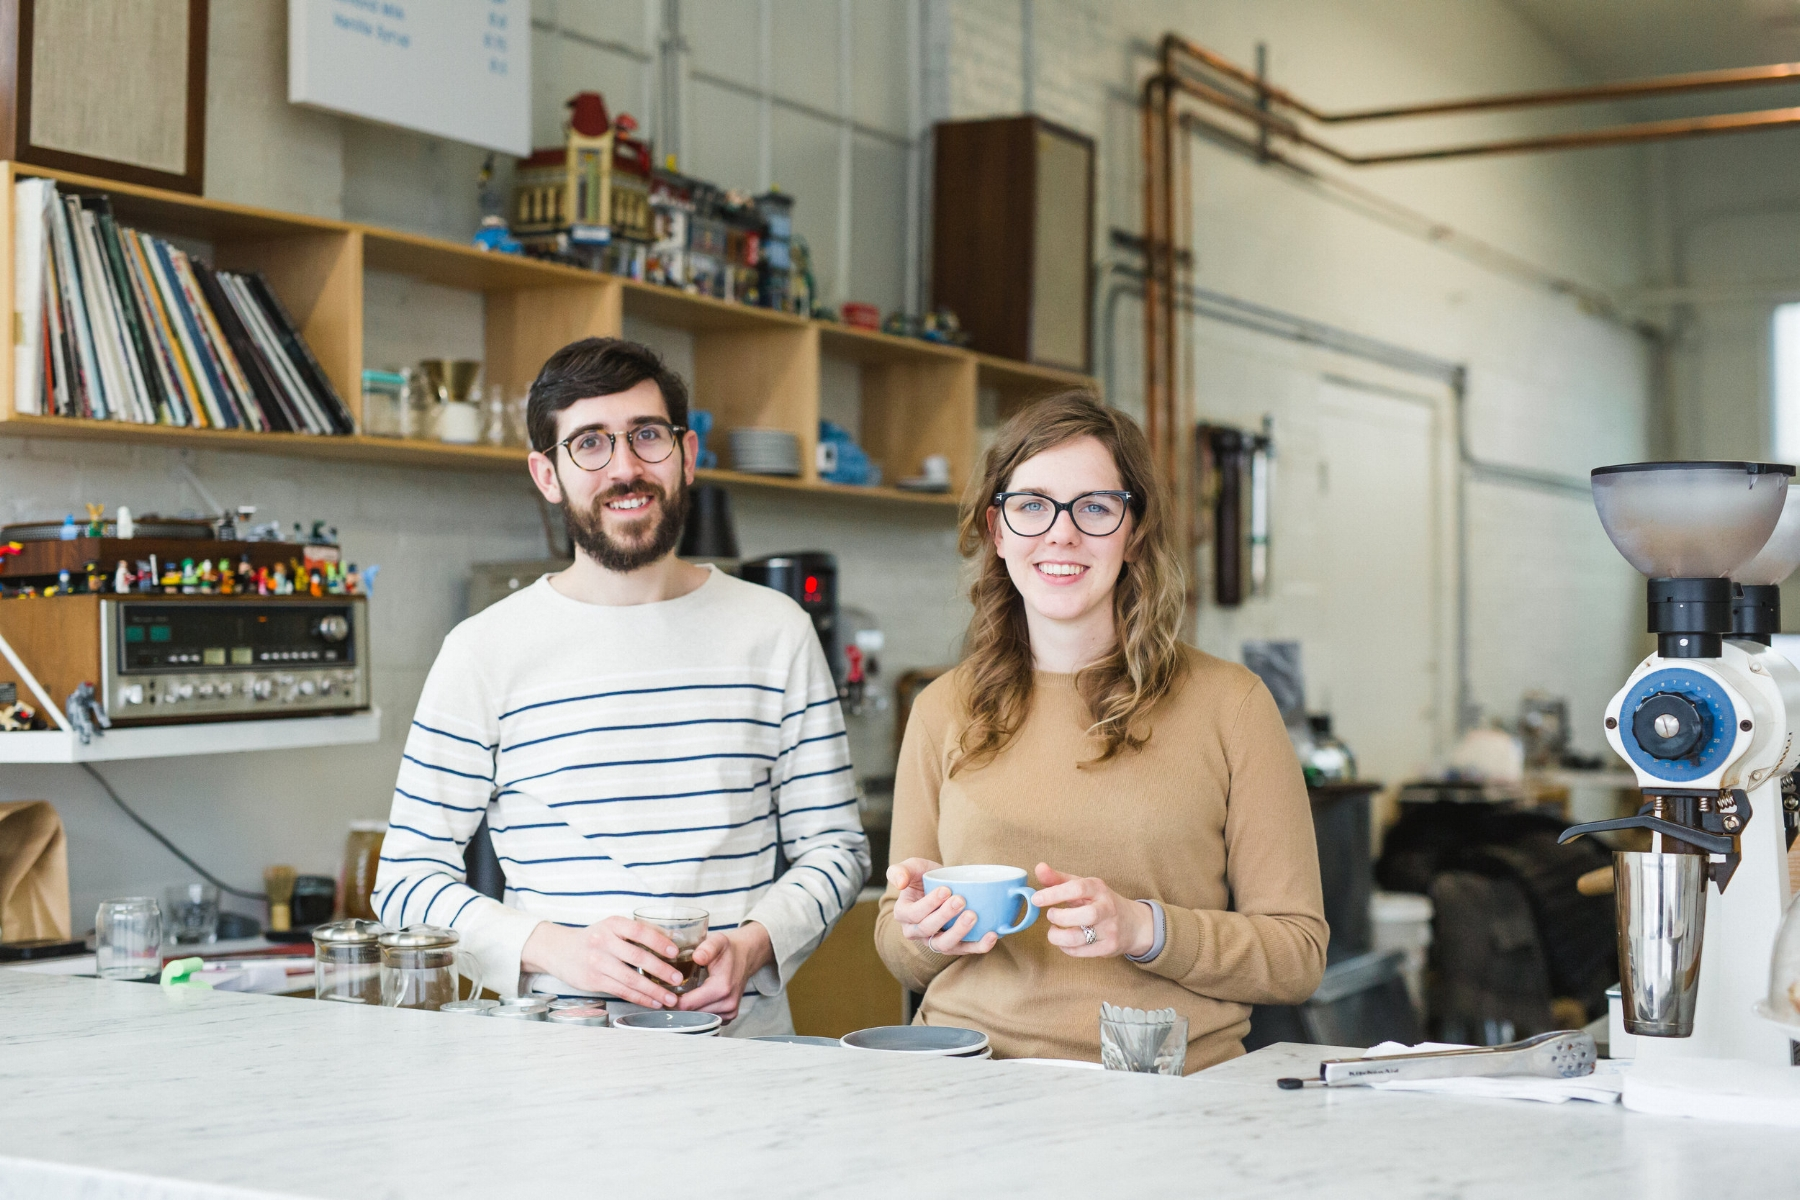 Chris Gatti (left) and his partner, Melissa Bartz, owners of Ipswich's Little Wolf Coffee. (Photograph by Esther Mathieu)